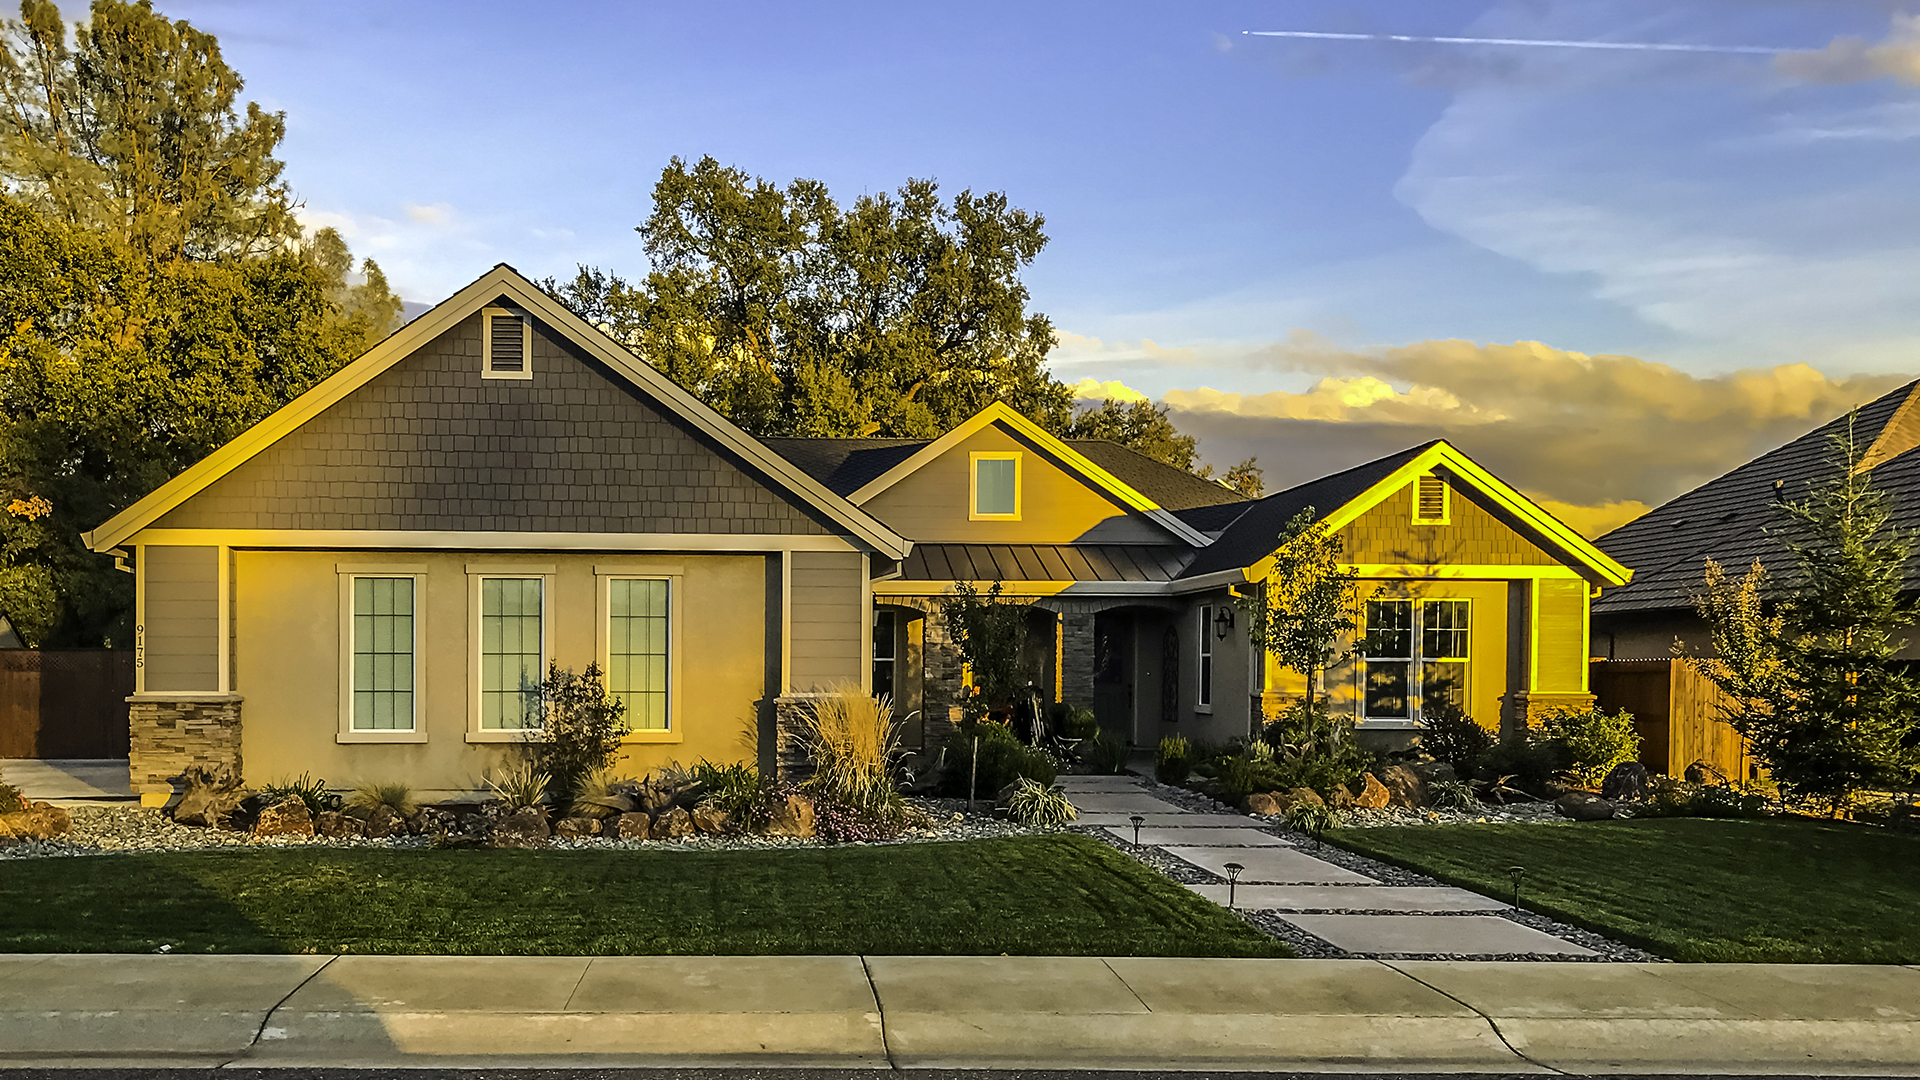 Upscale Custom Homes in Palo Cedro Oaks